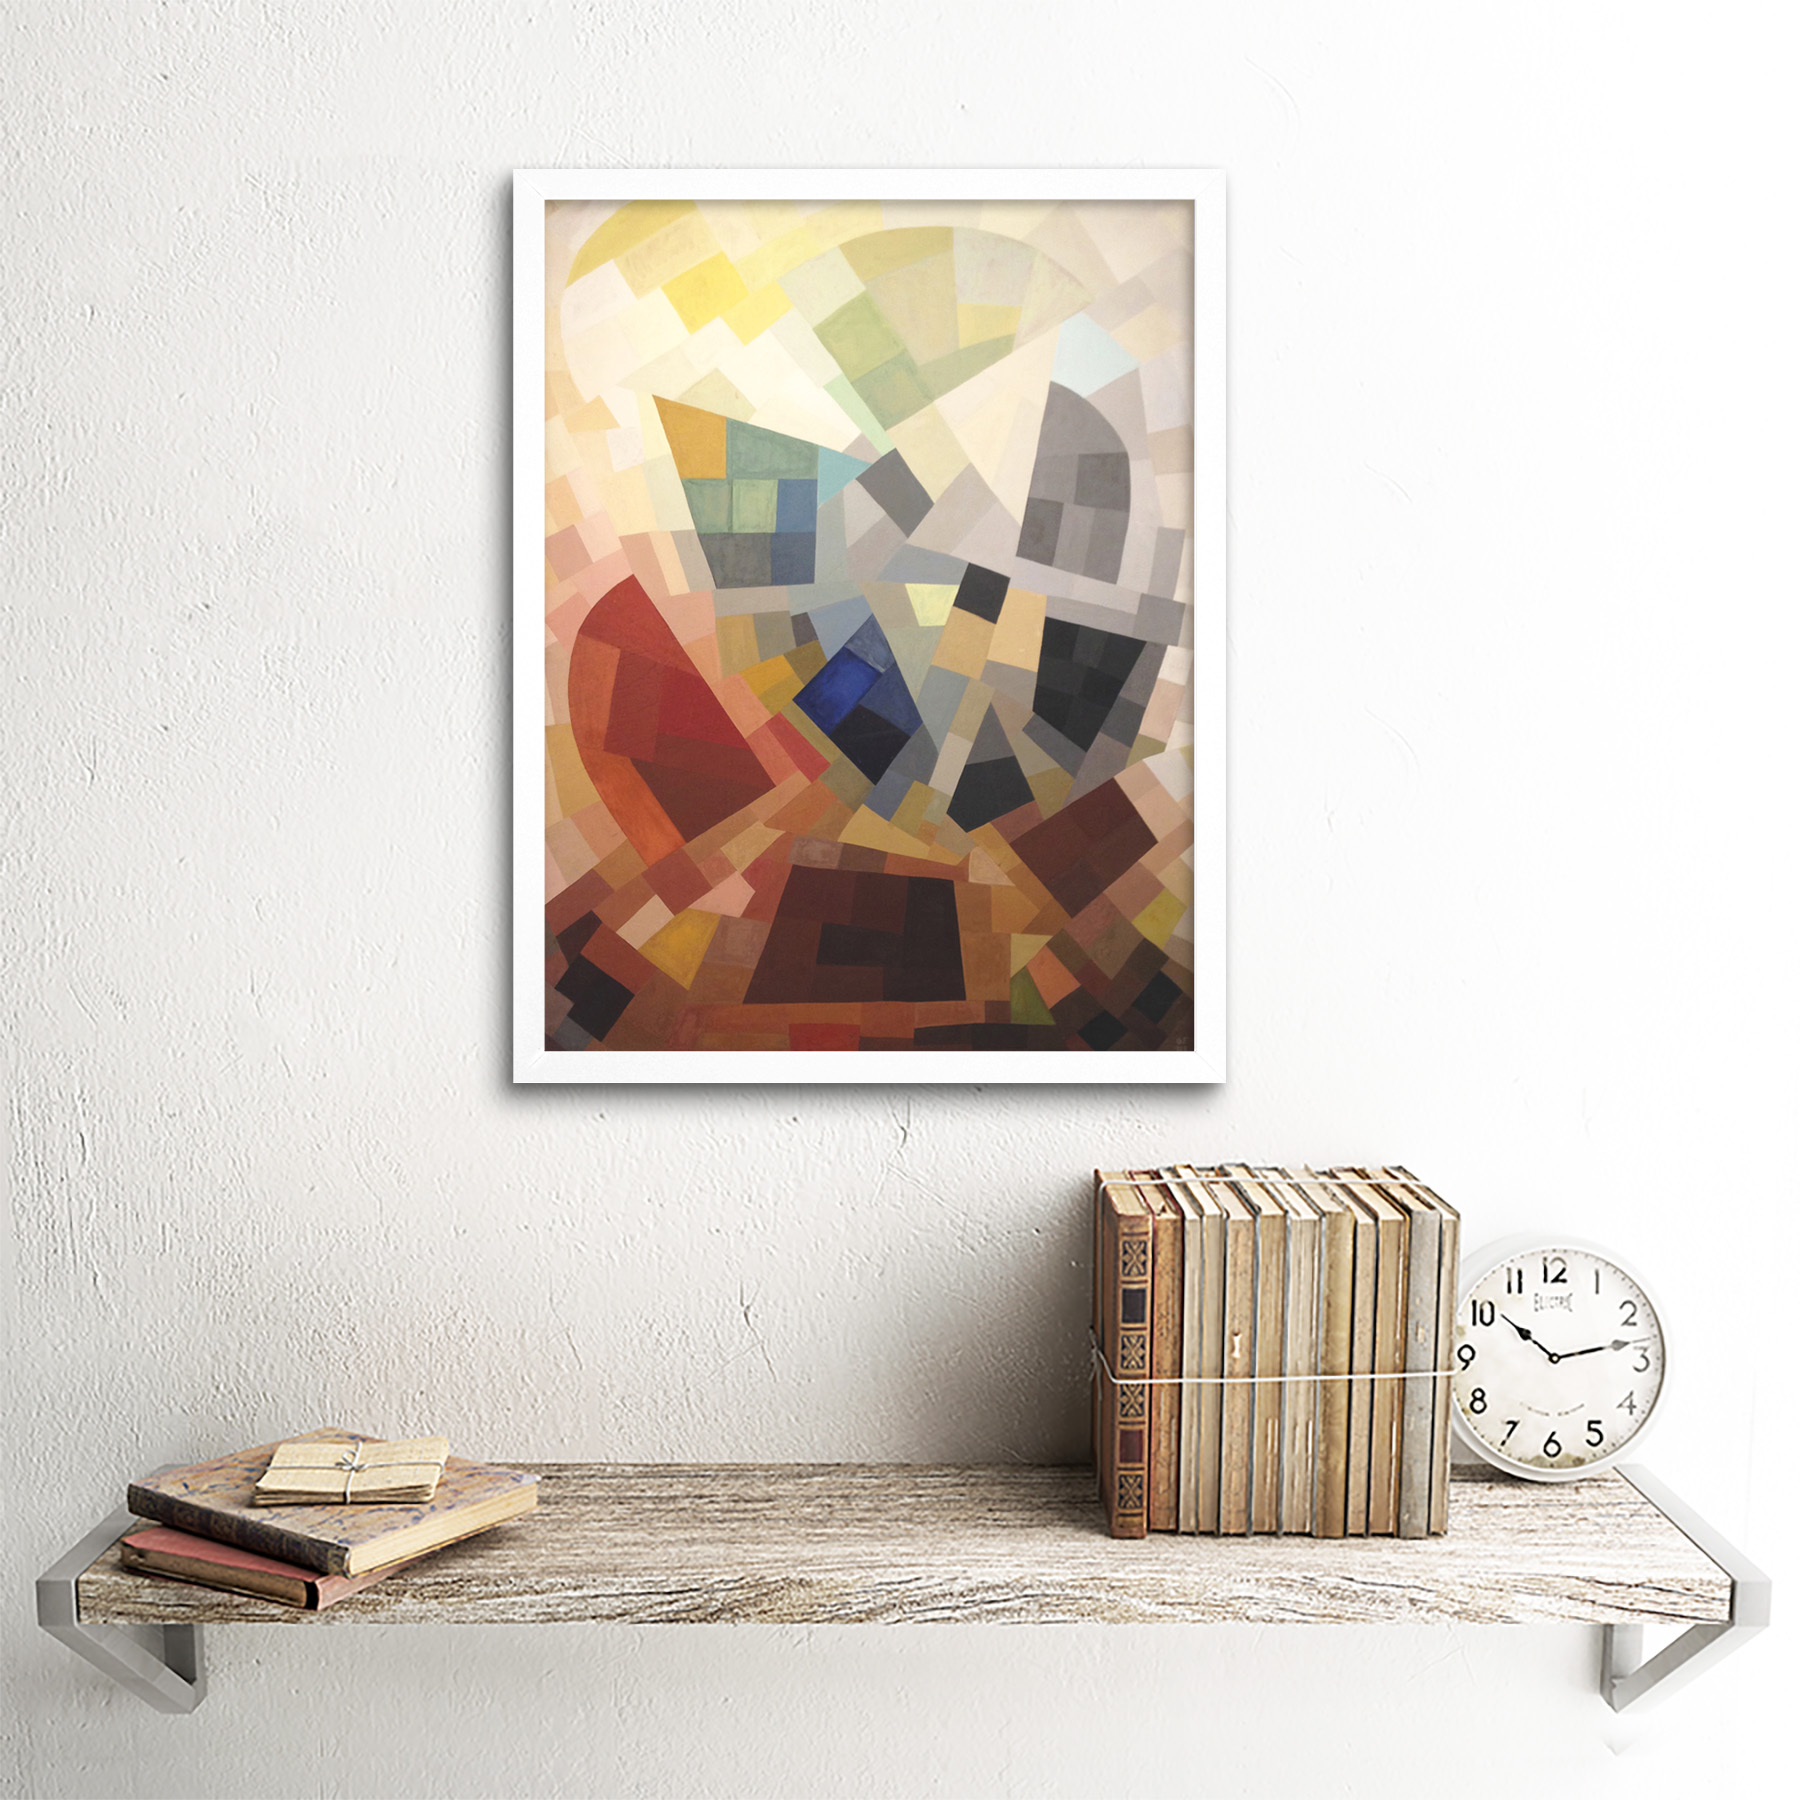 Freundlich-Abstract-Composition-Painting-Art-Print-Framed-12x16 thumbnail 18